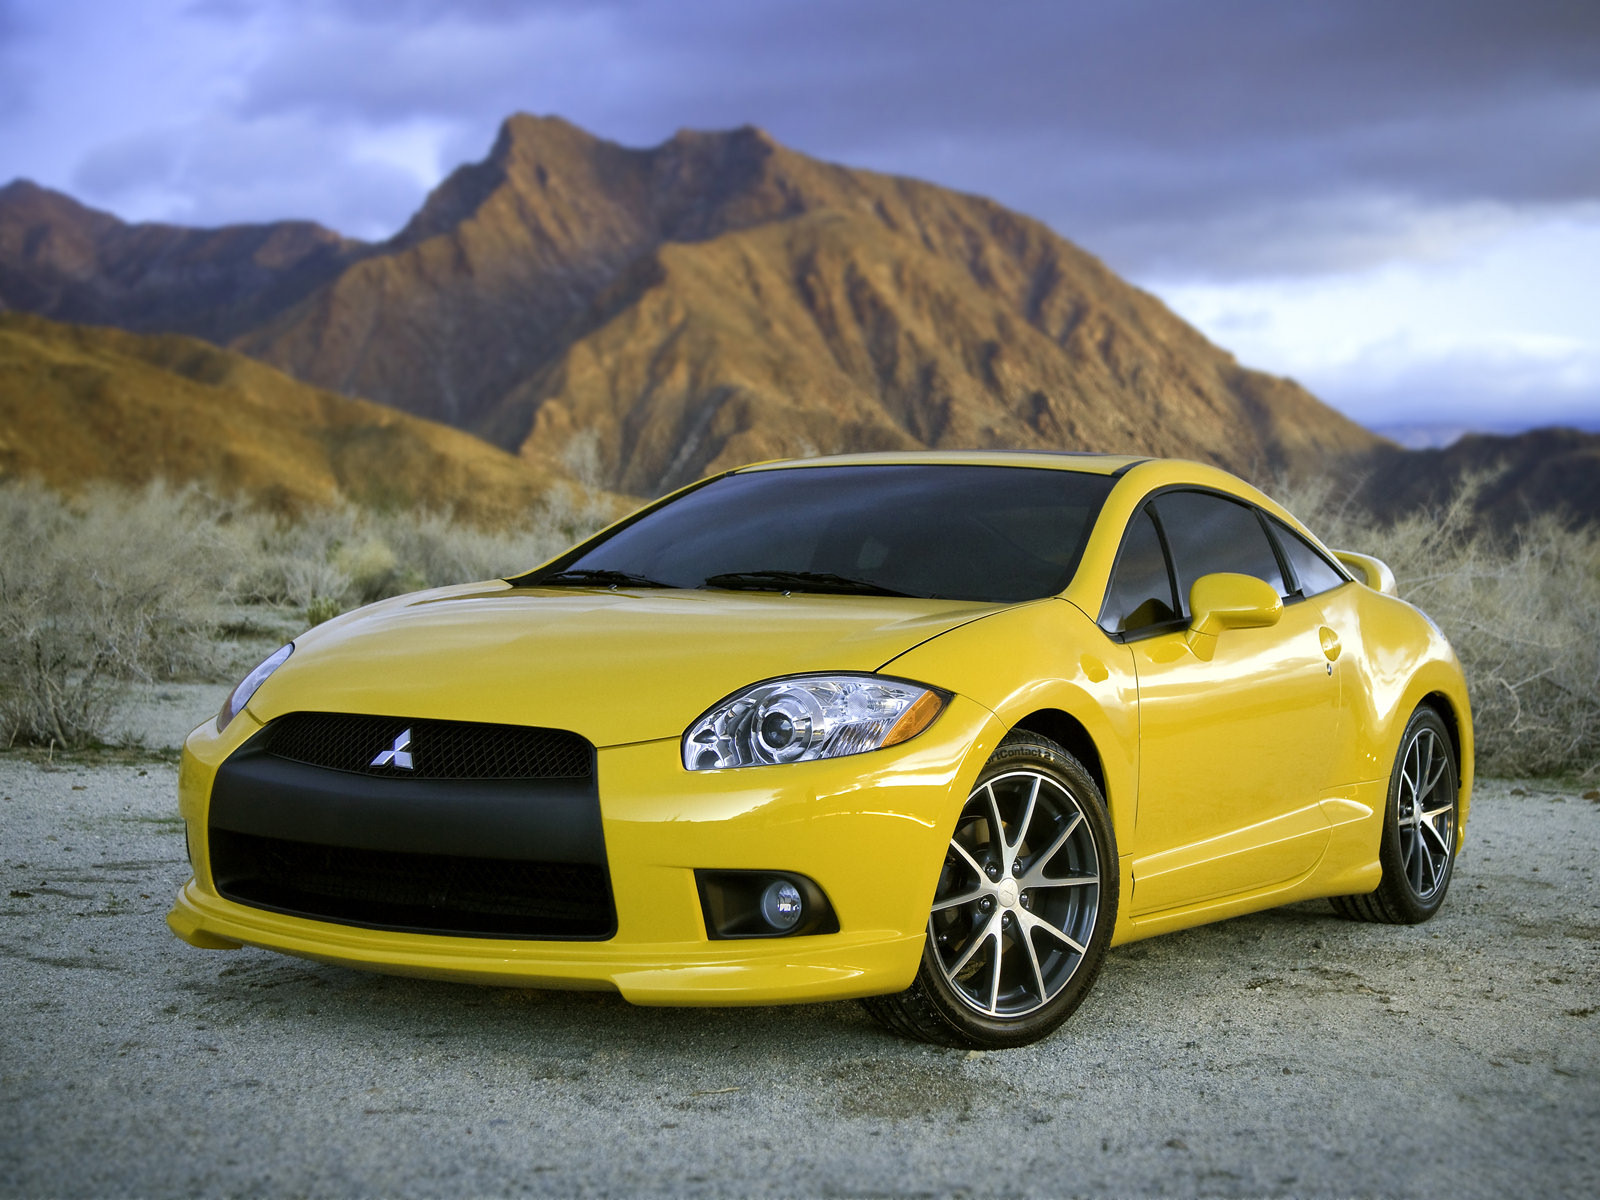 Road Car Pictures: 2008 Mitsubishi Eclipse GT